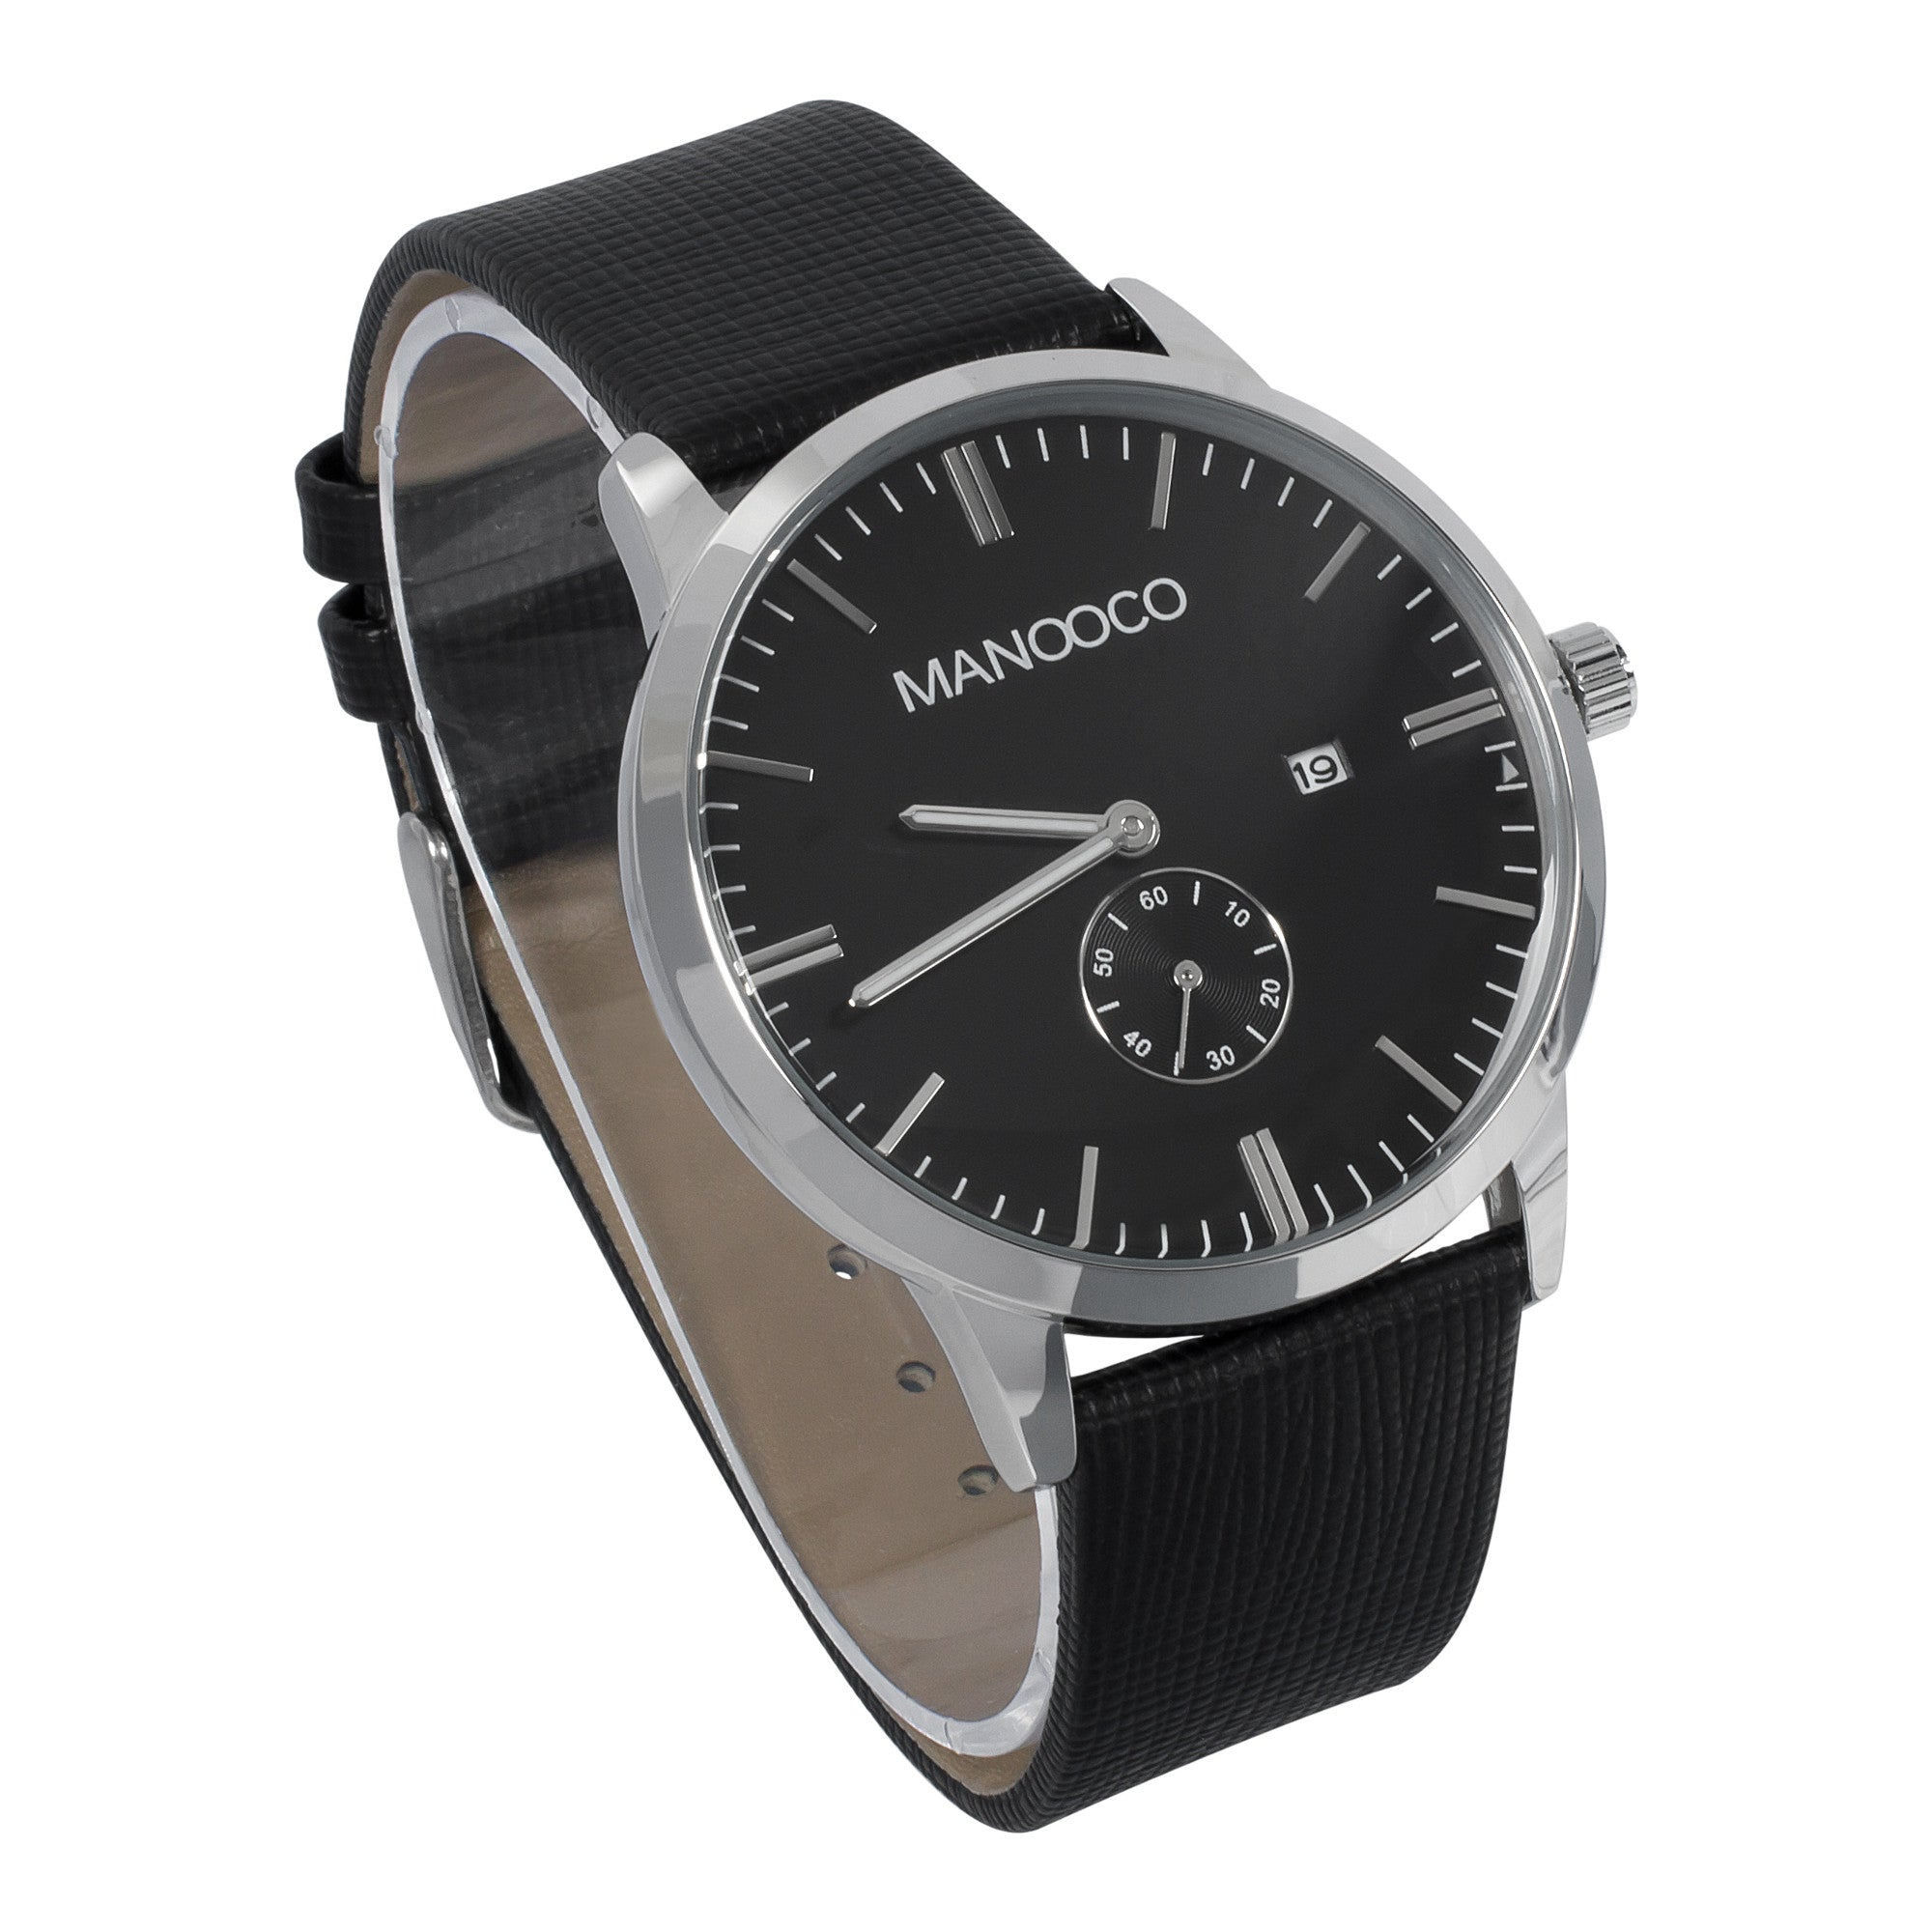 Arion Night - Watch - MANOOCO - Watch - manooco